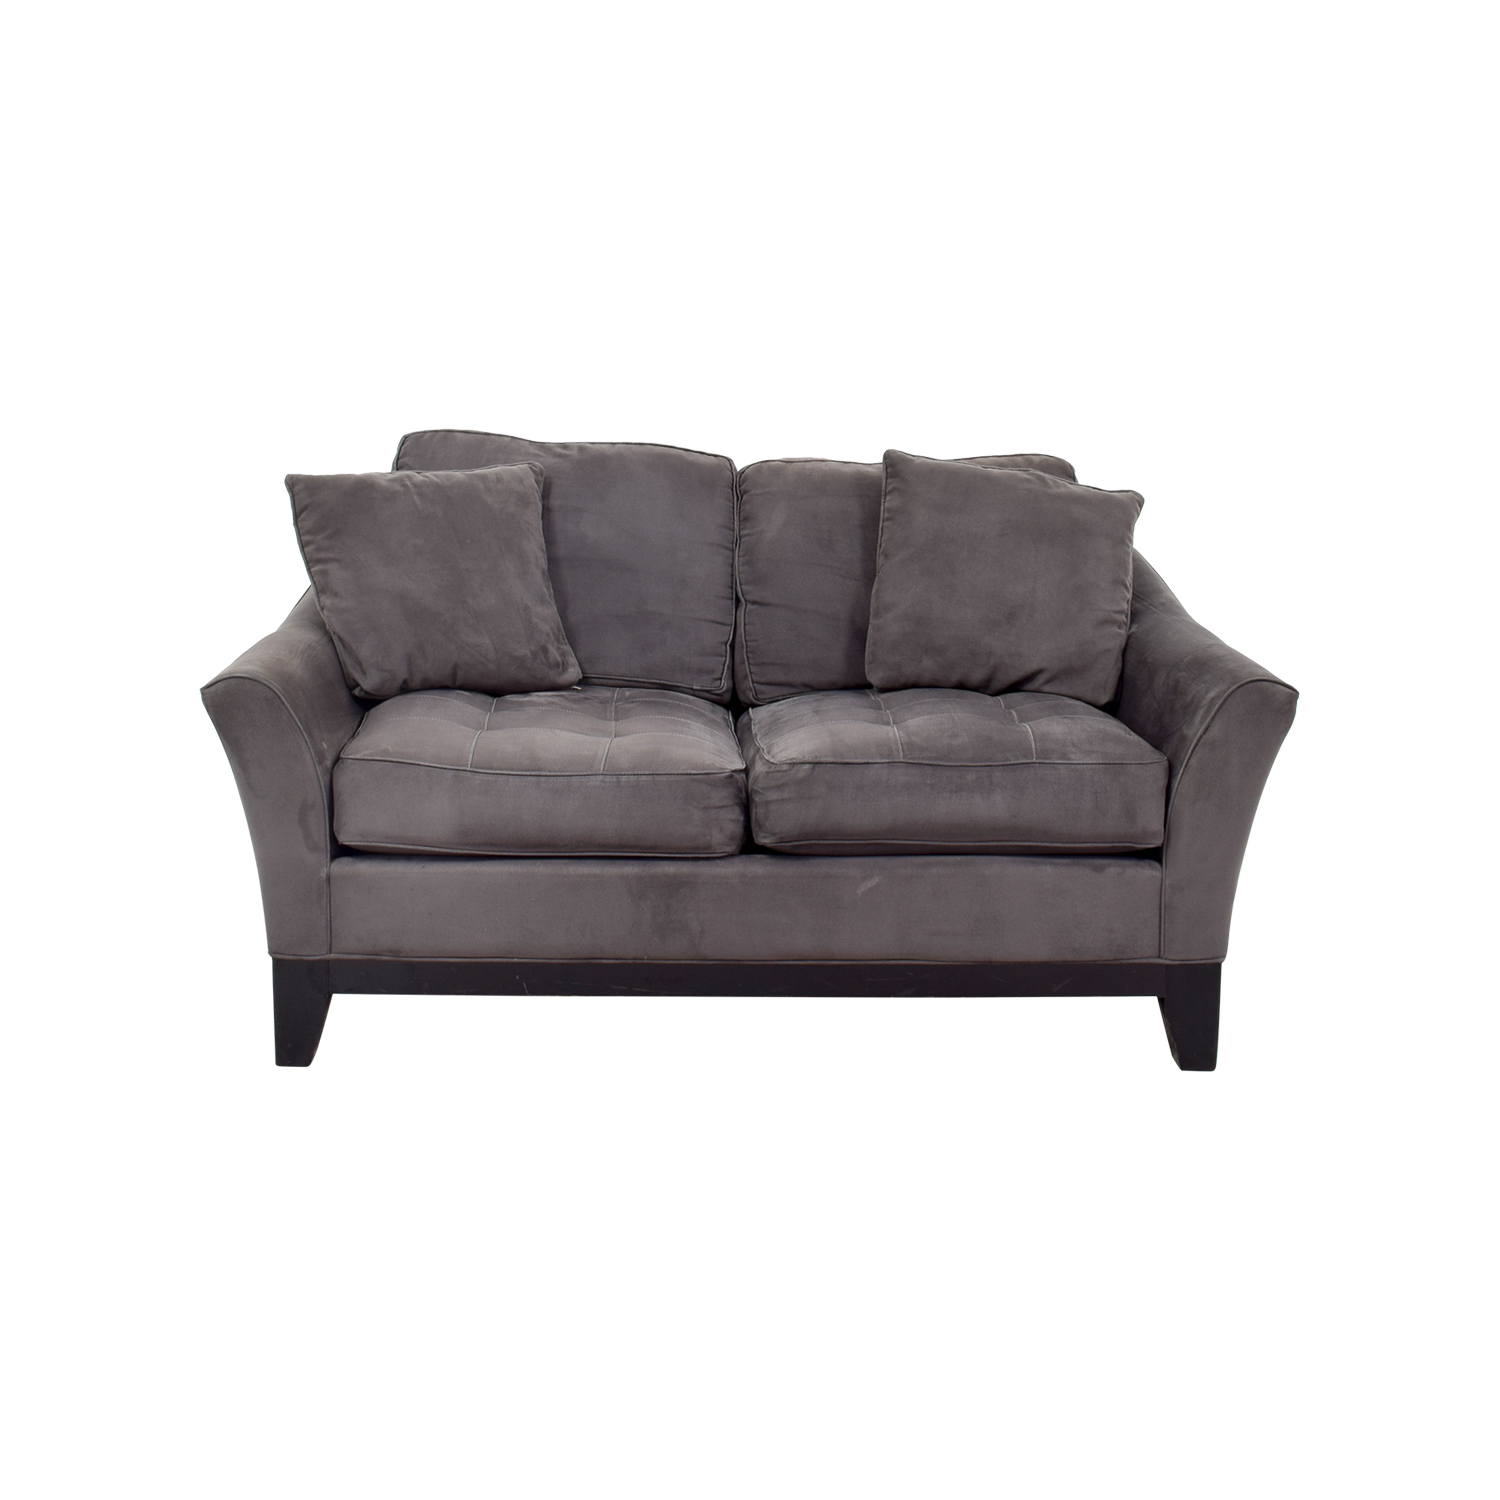 [%75% Off – Raymour & Flanigan Raymour & Flanigan Rory Slate In Well Known Rory Sofa Chairs|Rory Sofa Chairs Regarding Preferred 75% Off – Raymour & Flanigan Raymour & Flanigan Rory Slate|Most Recent Rory Sofa Chairs Throughout 75% Off – Raymour & Flanigan Raymour & Flanigan Rory Slate|Popular 75% Off – Raymour & Flanigan Raymour & Flanigan Rory Slate Within Rory Sofa Chairs%] (View 1 of 20)